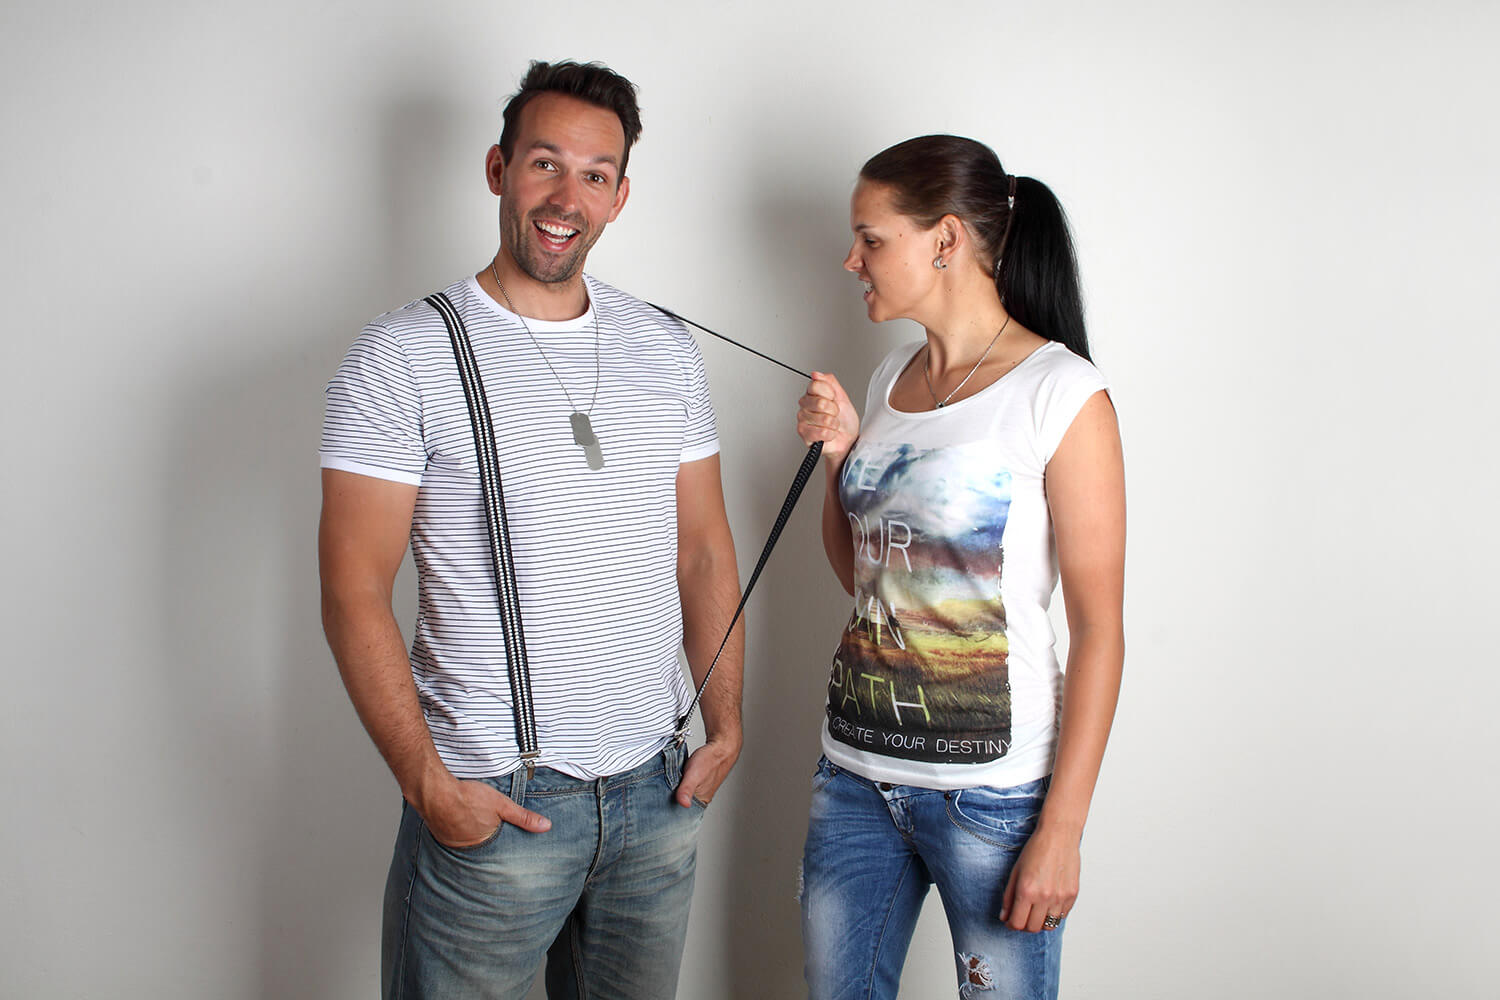 couple photo of a woman and a man with suspenders on a light background